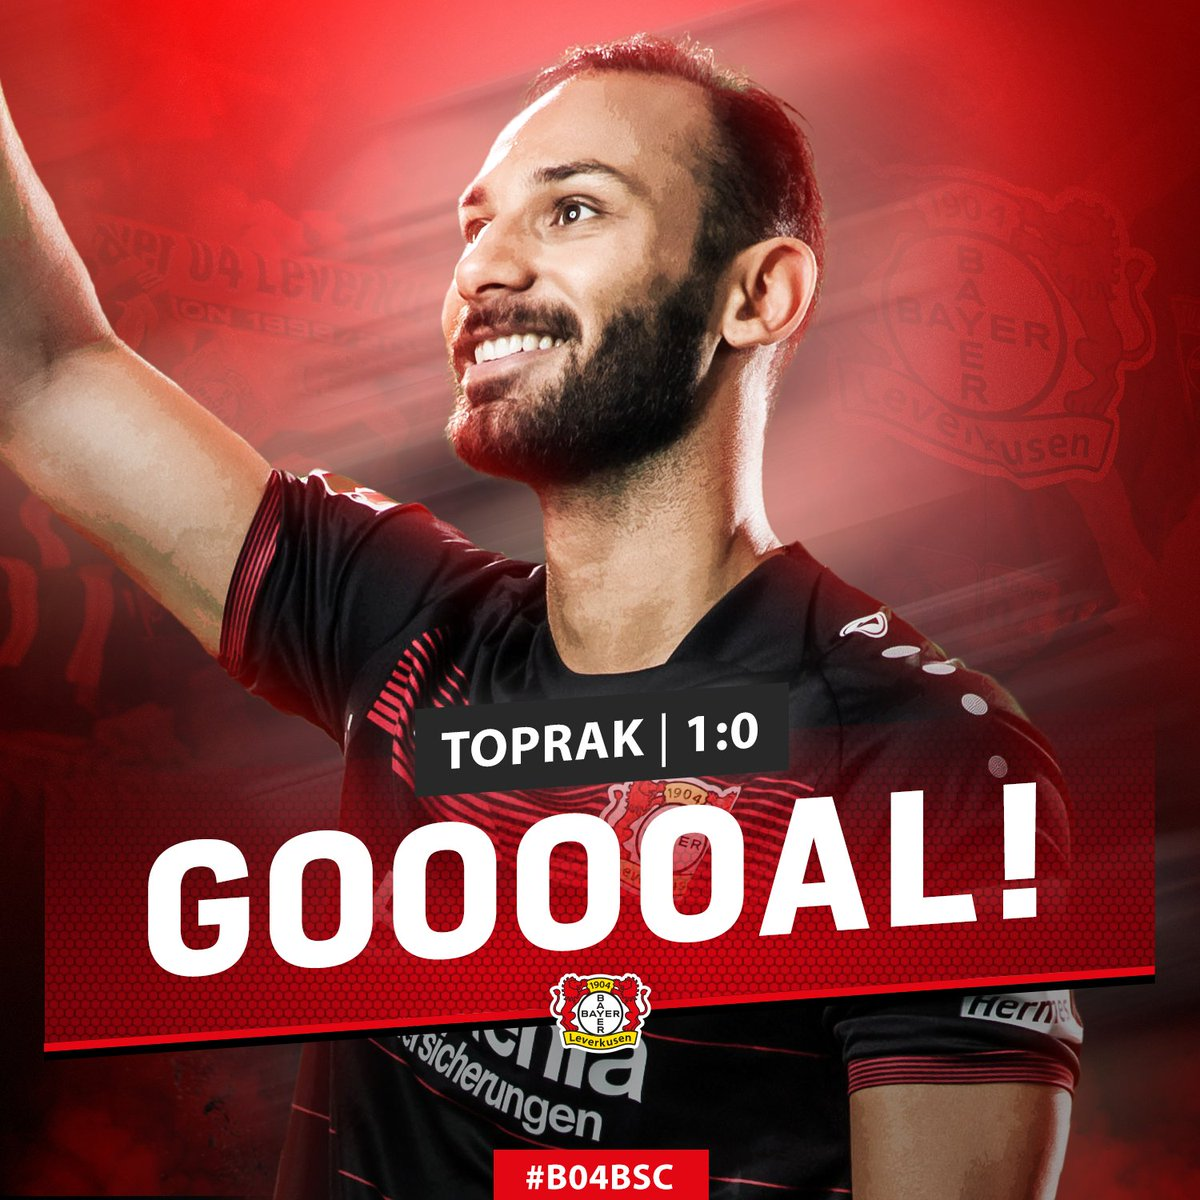 12' GOOOOOOOOOAAAAAAL!   Ömer #Toprak makes it 1:0!  #B04BSC https://t...